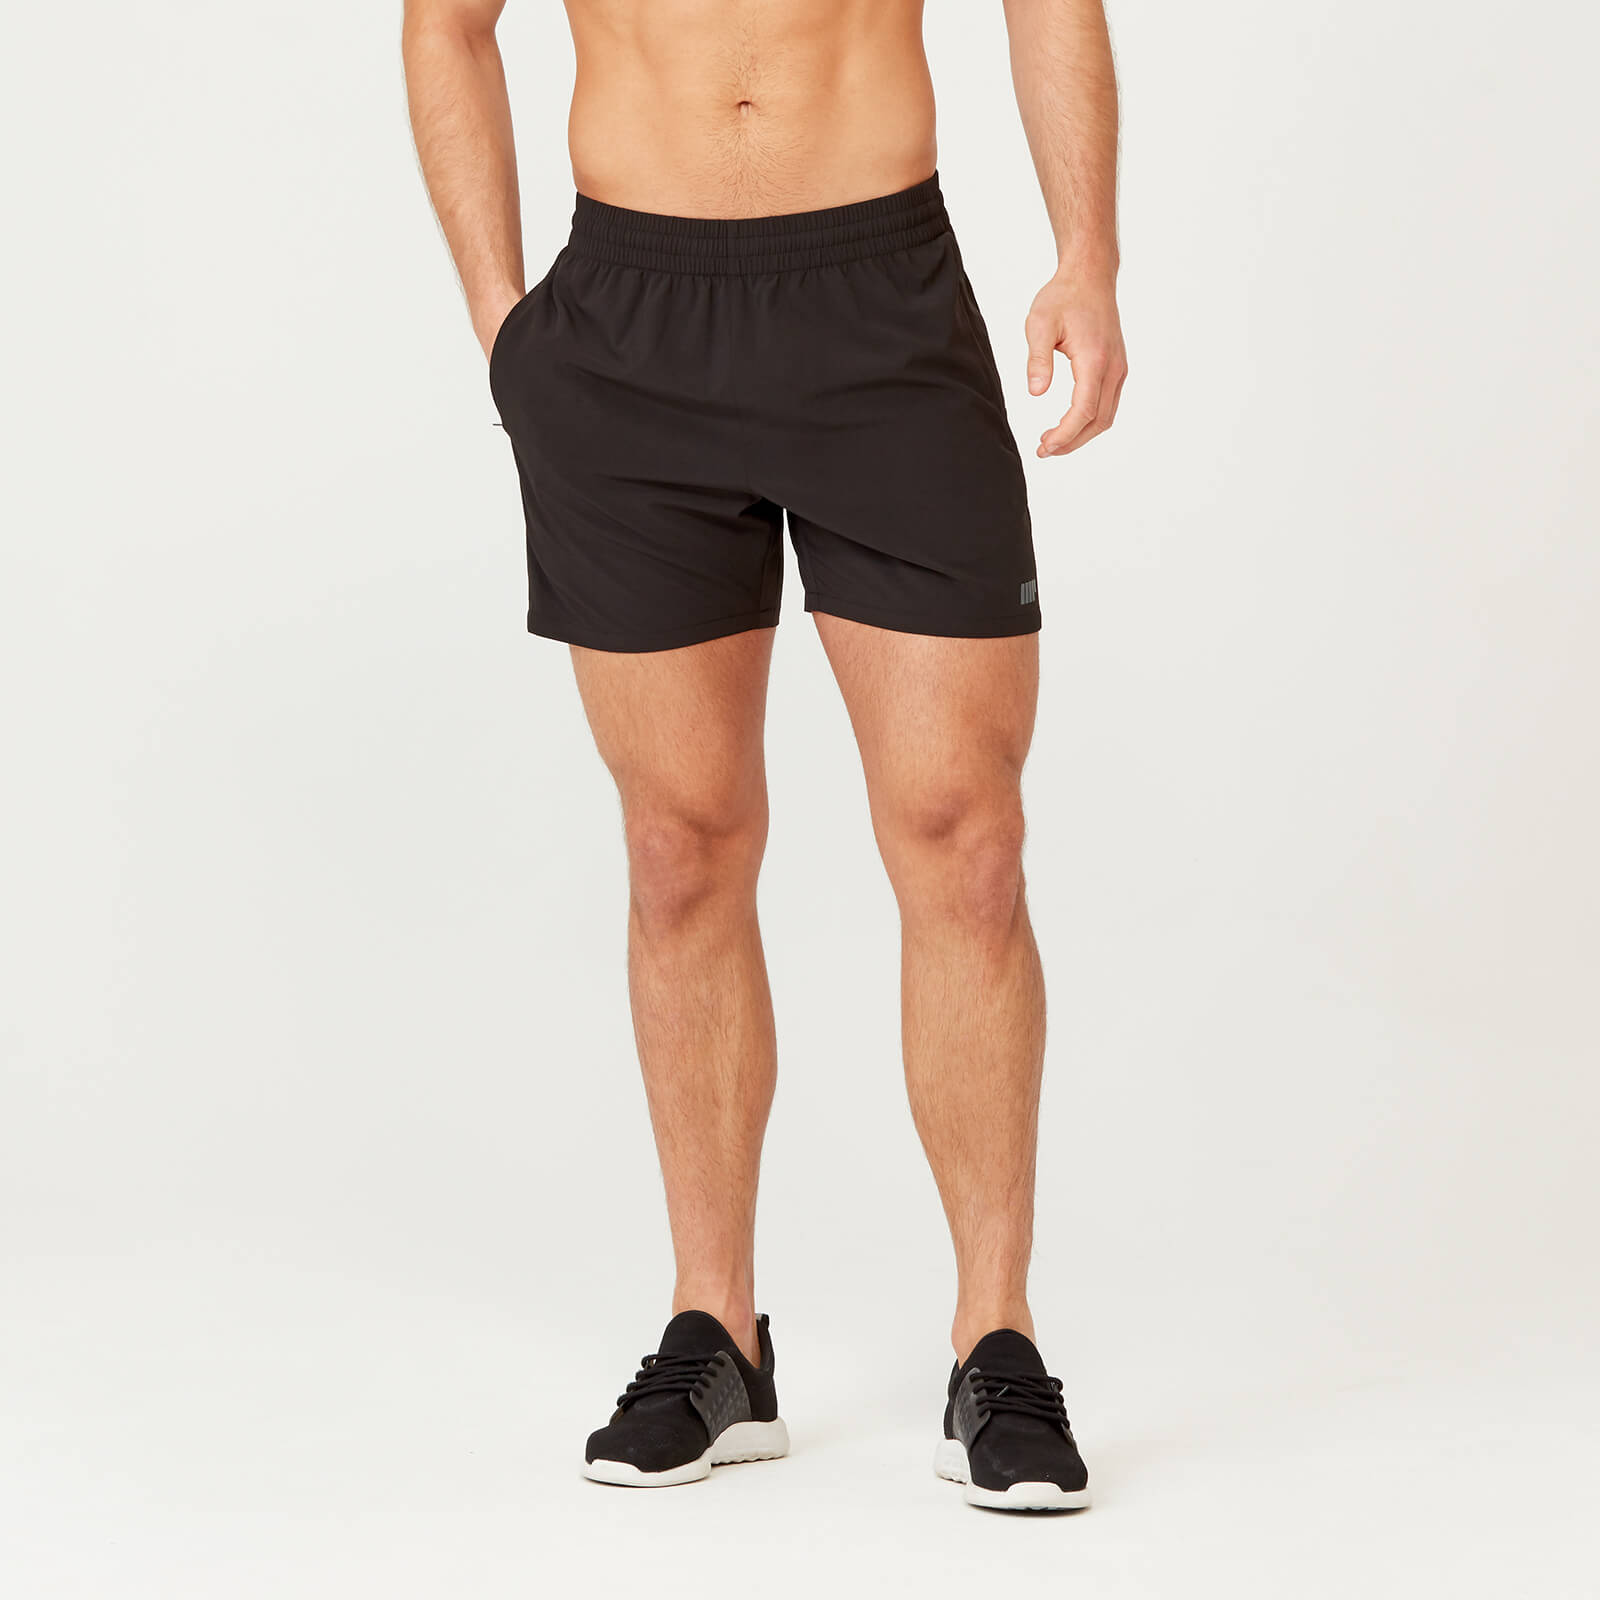 Sprint Shorts - Black - L